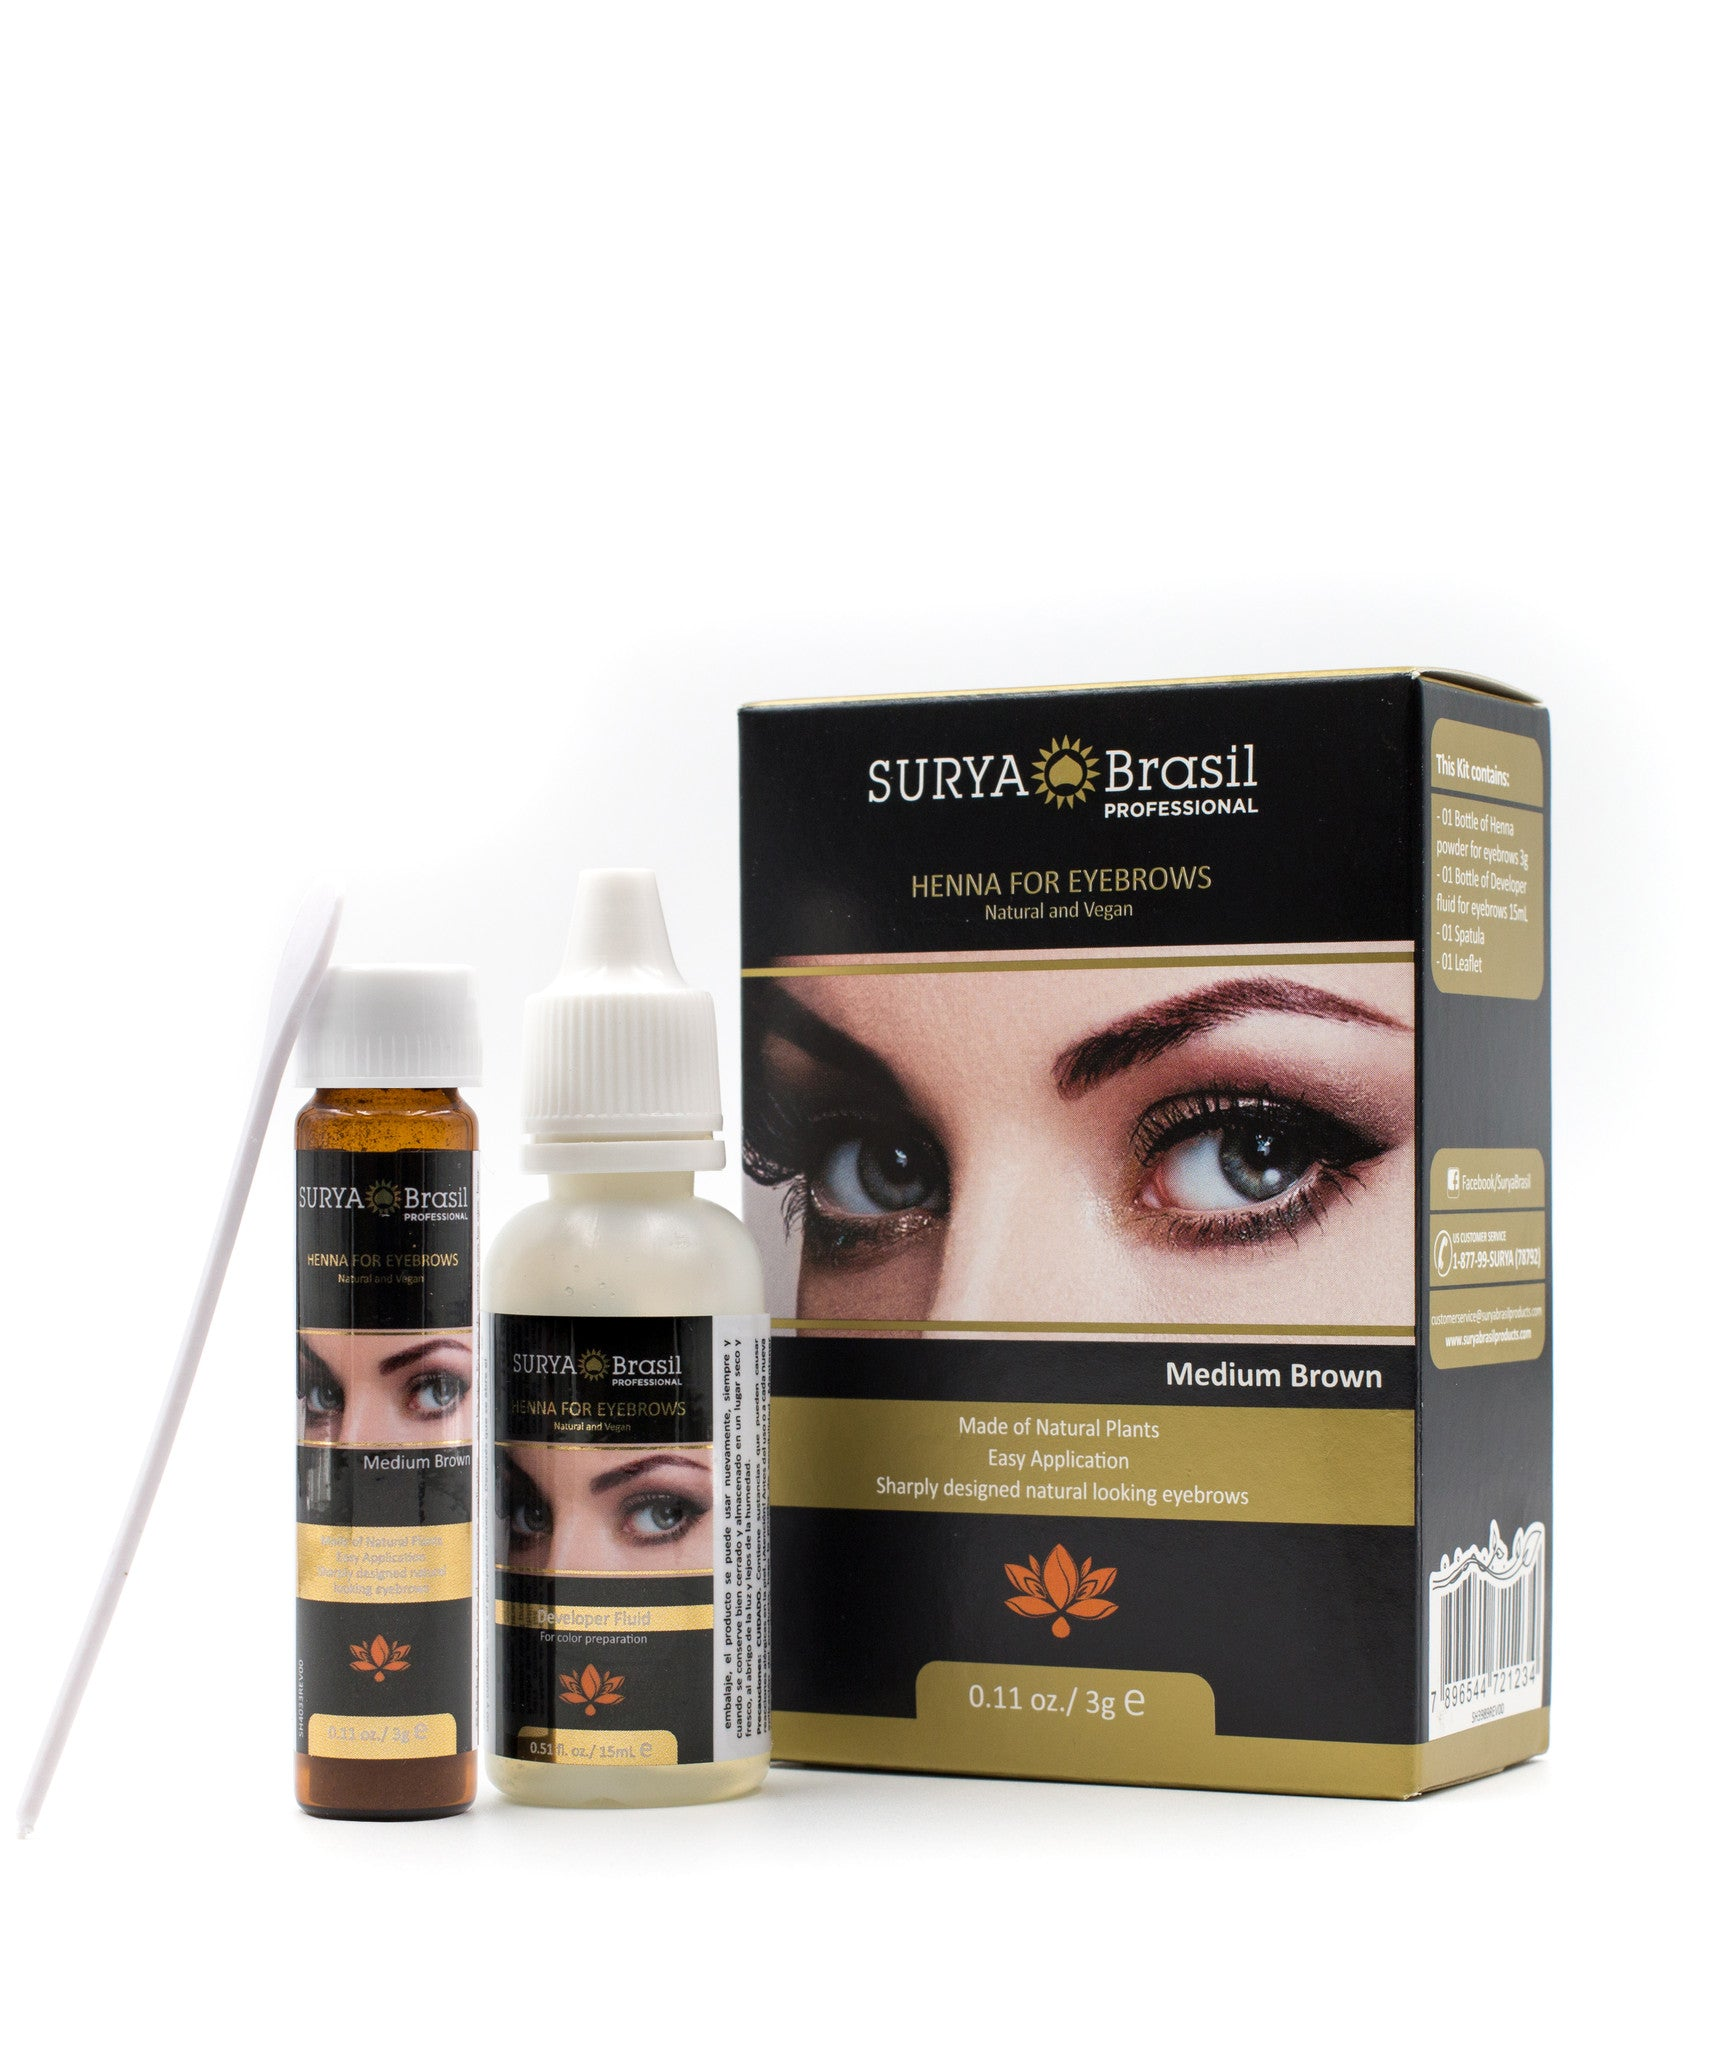 Henna Eyebrows Natural Eyebrow Color Eyebrow Tinting Surya Brasil